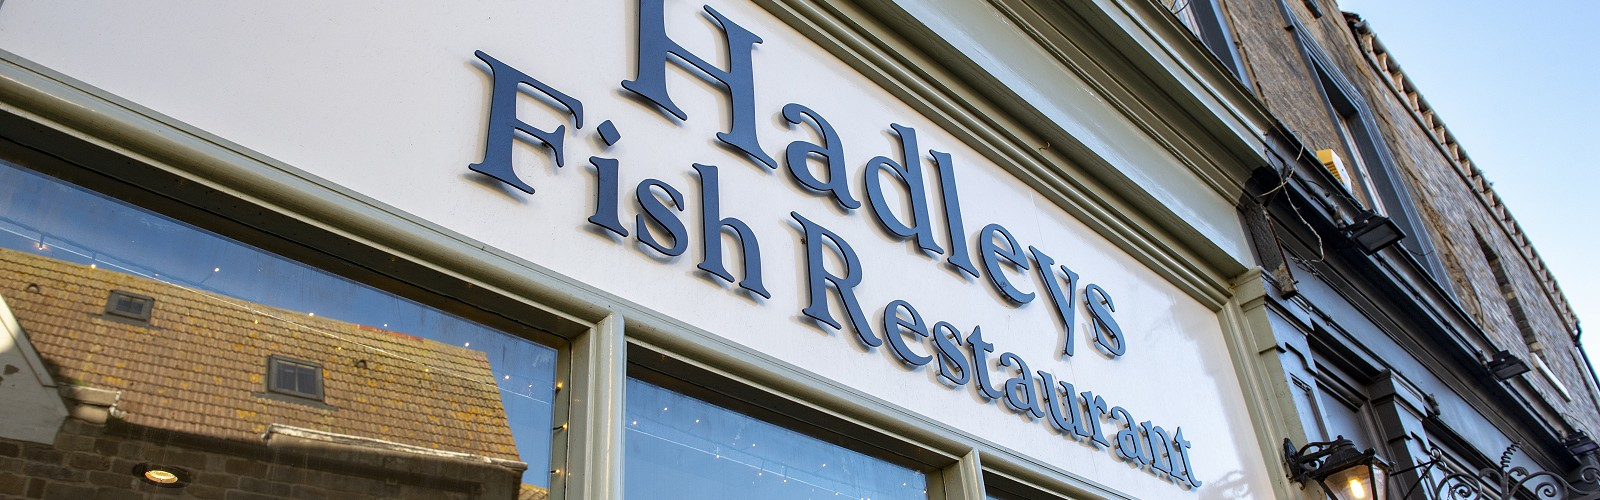 Hadley's Fish and Chips in Whitby